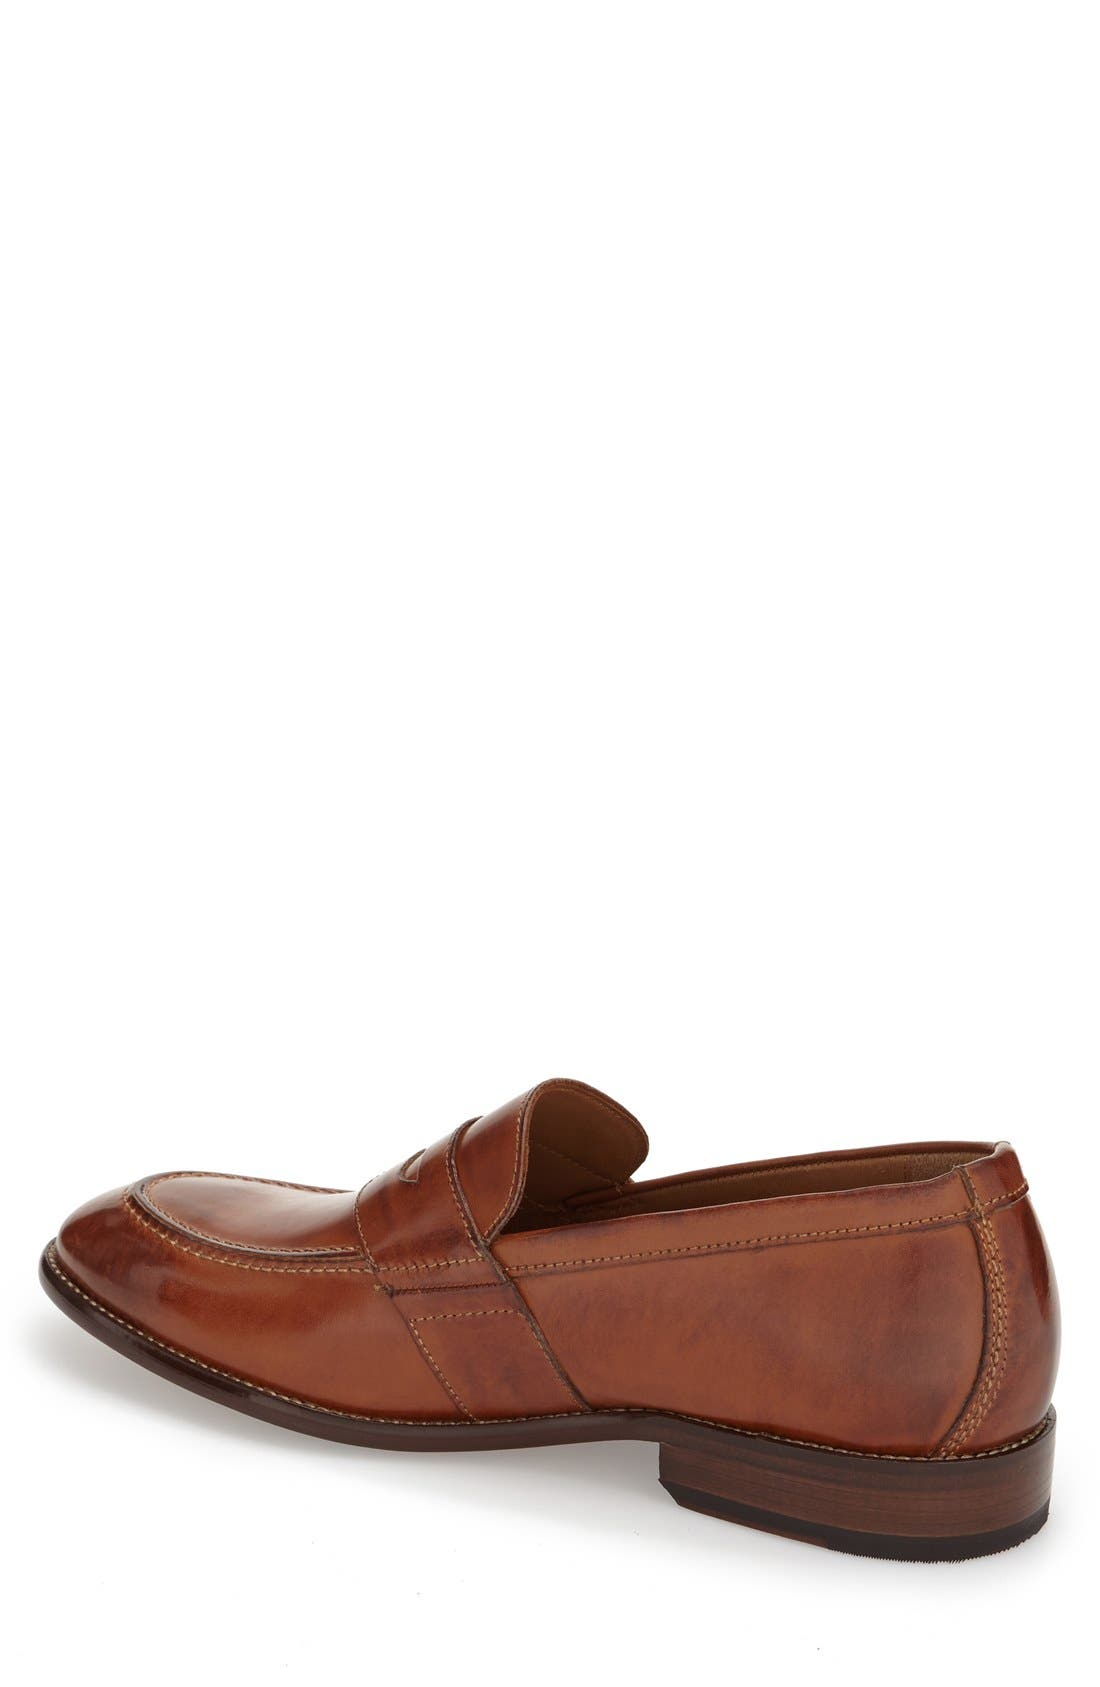 J & M 1850 'Allred' Penny Loafer,                             Alternate thumbnail 3, color,                             240